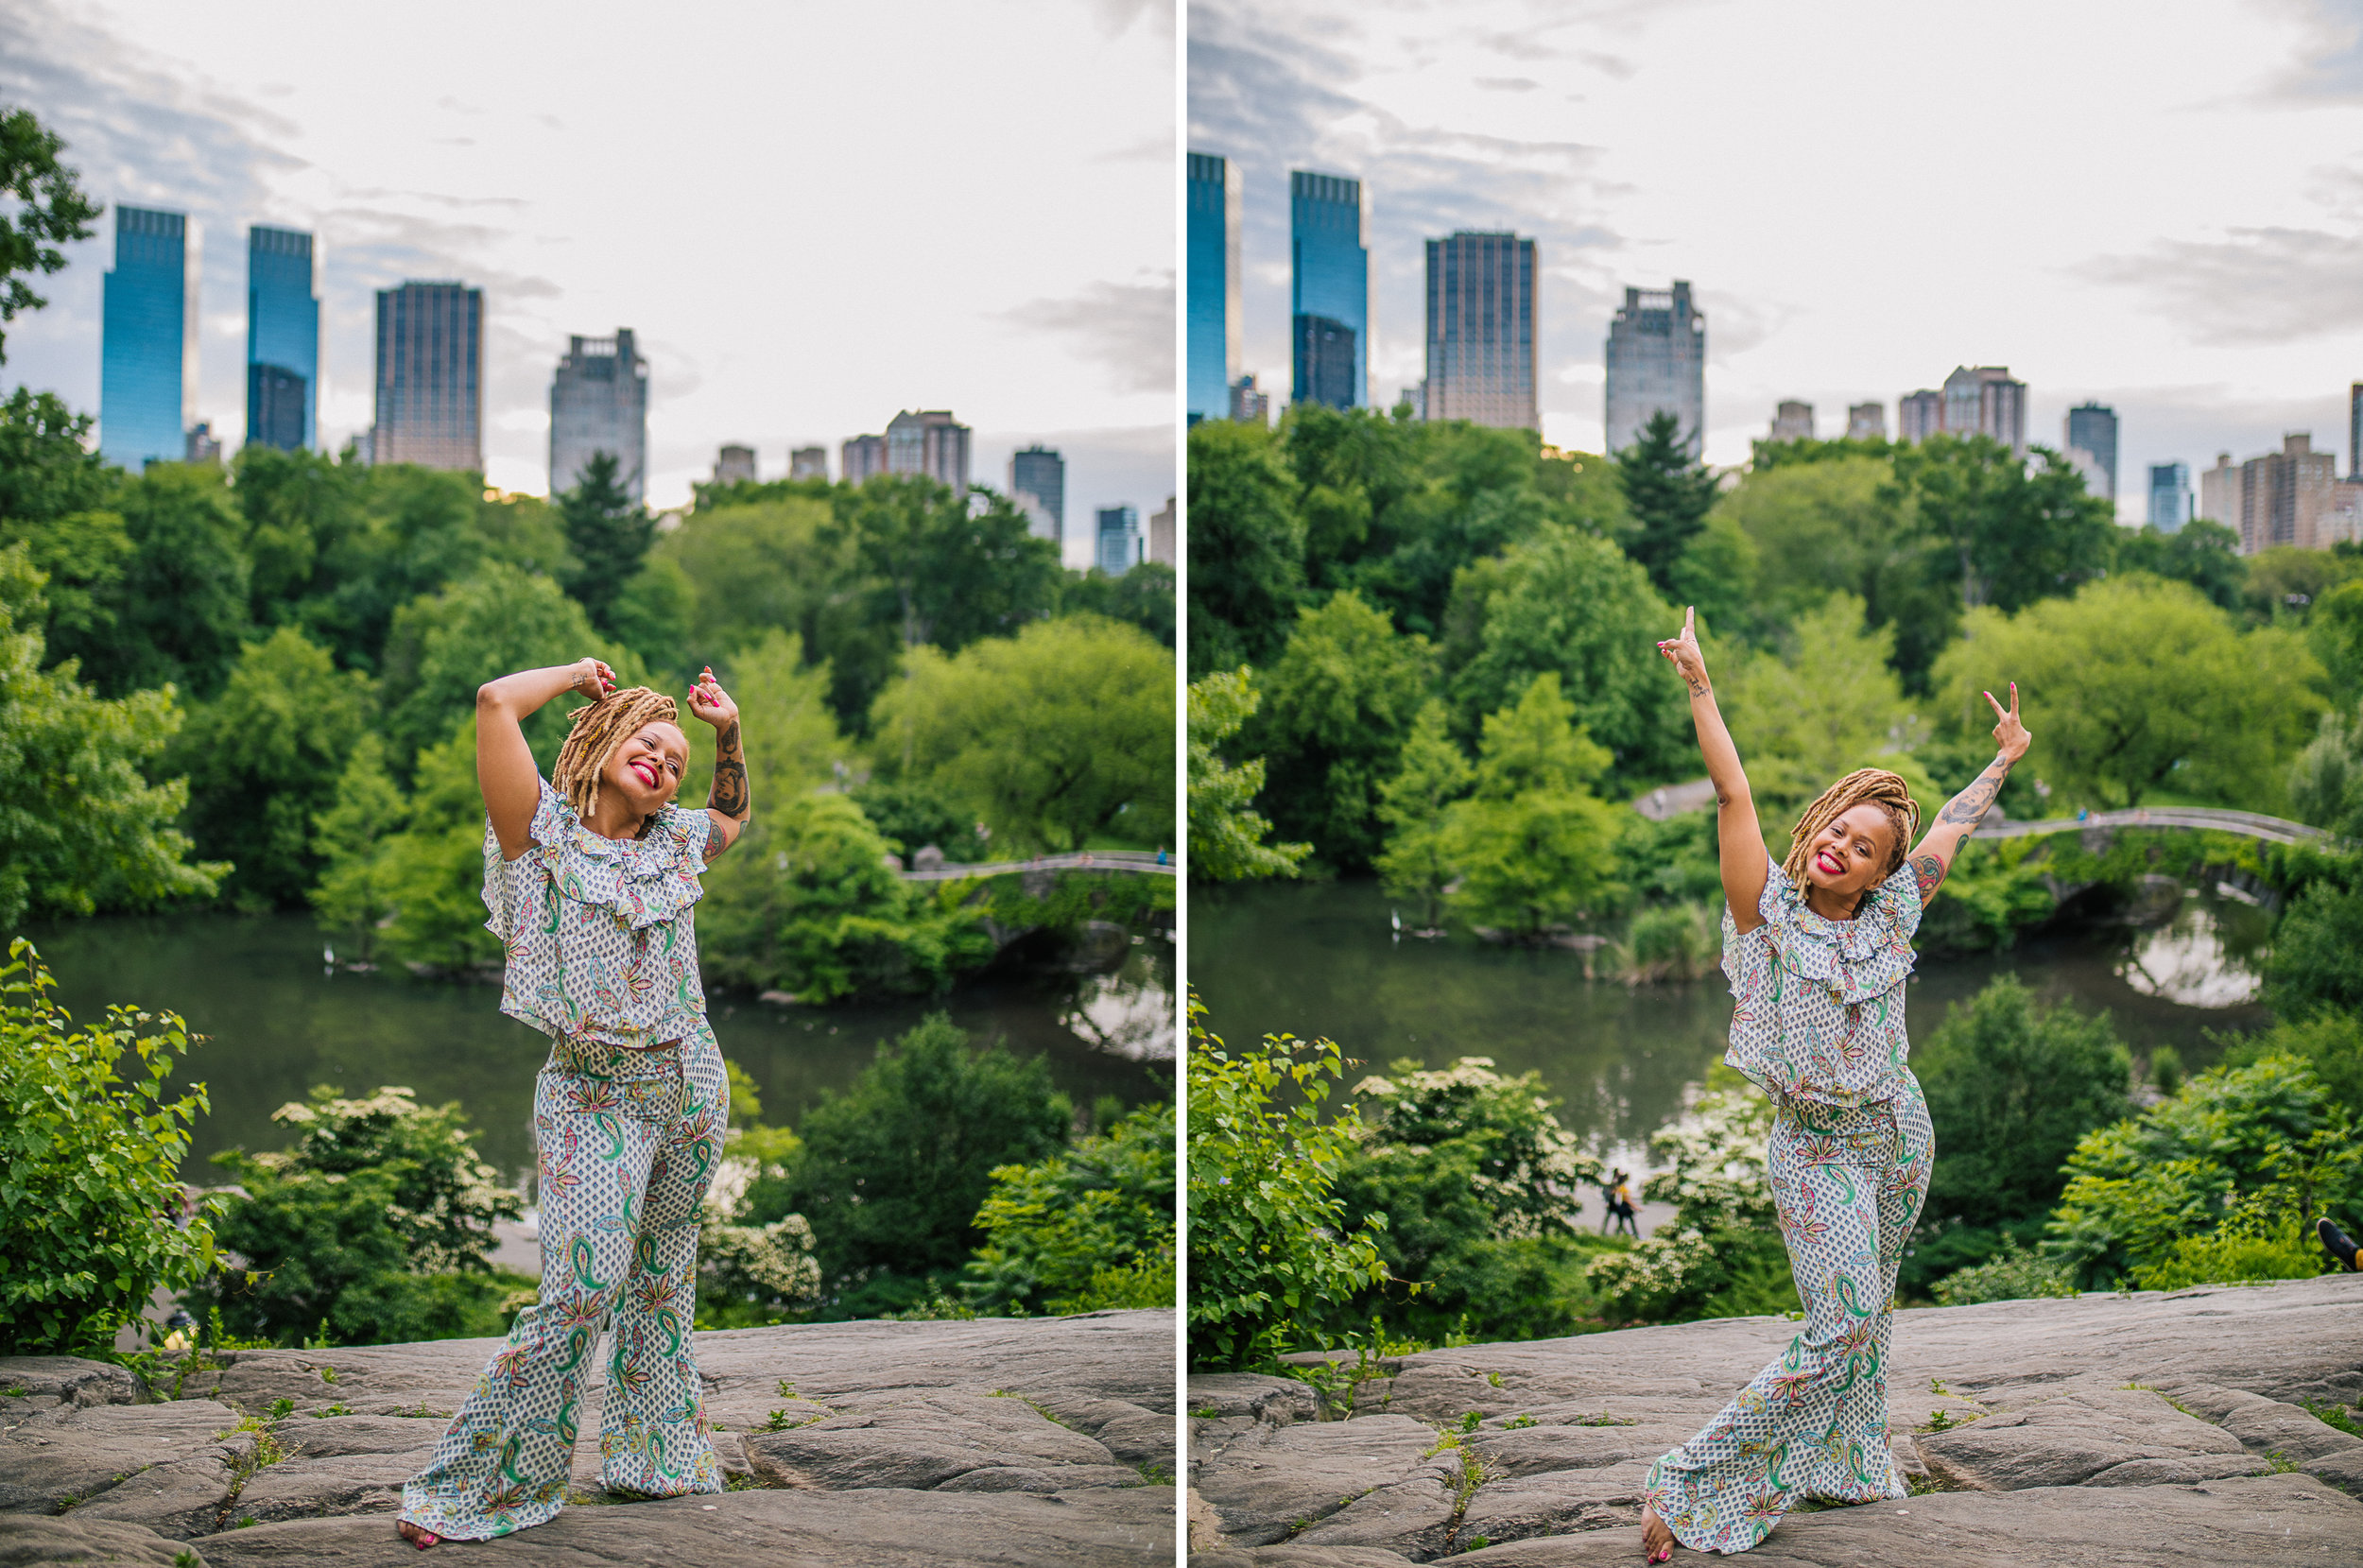 central_park_nyc_portraits_2.jpg